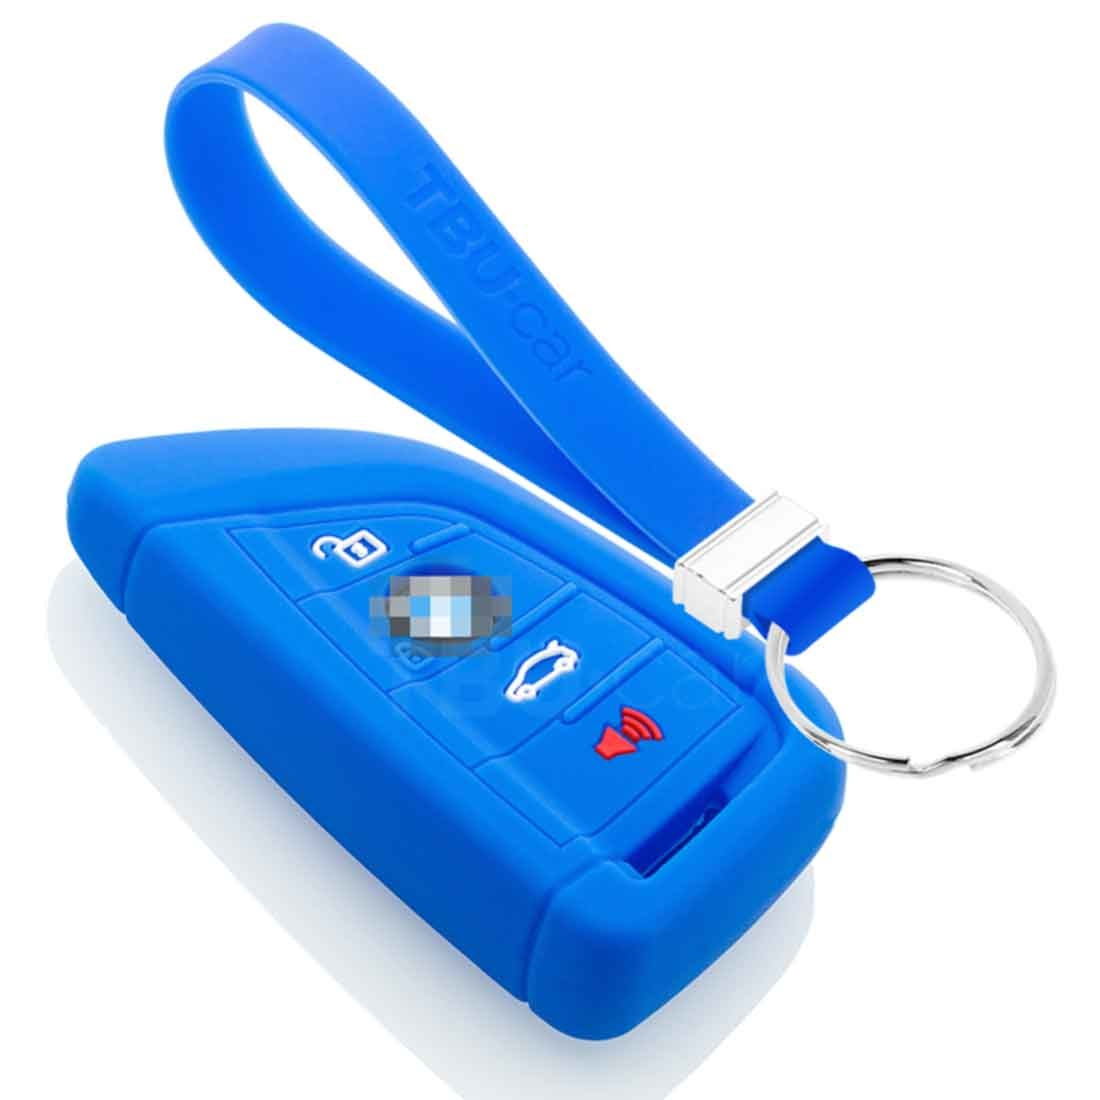 TBU car TBU car Car key cover compatible with BMW - Silicone Protective Remote Key Shell - FOB Case Cover - Blue